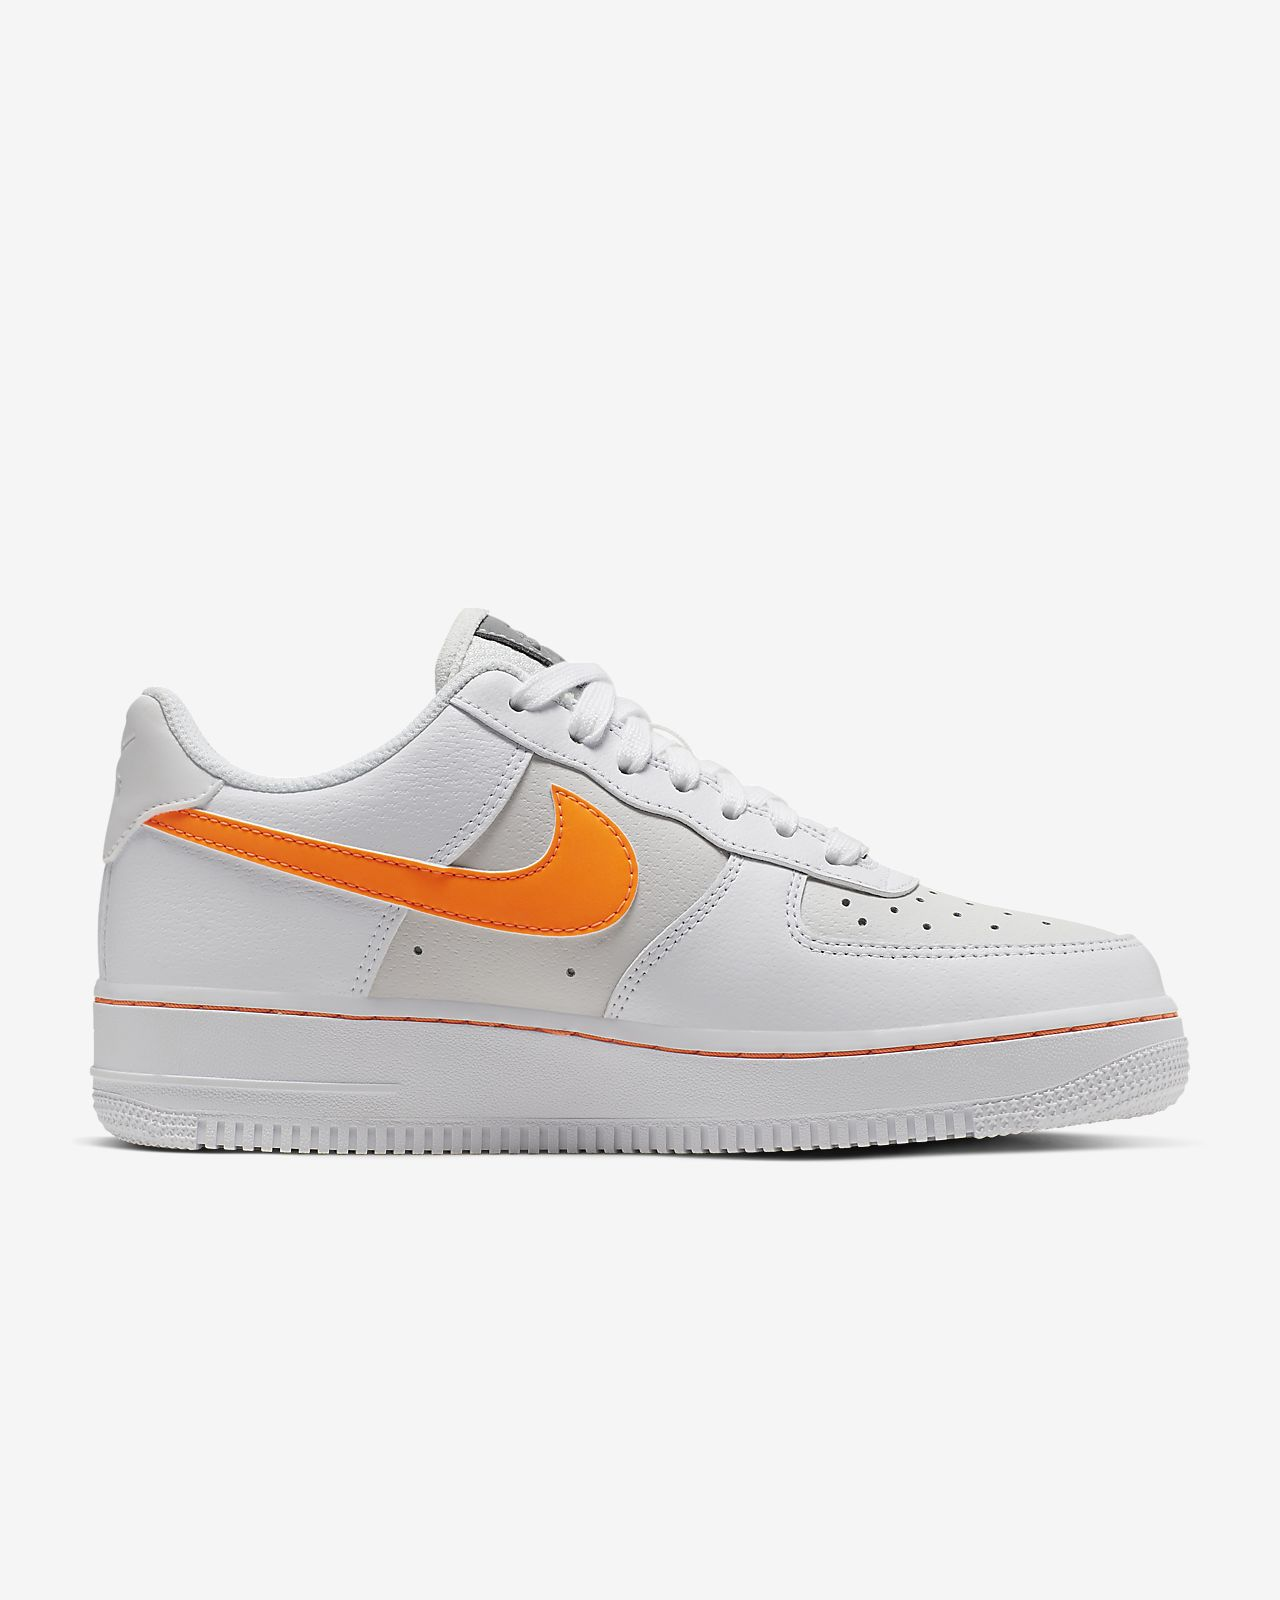 Air Force Low 1 Femme Pour Nike Chaussure tshxCdoQrB